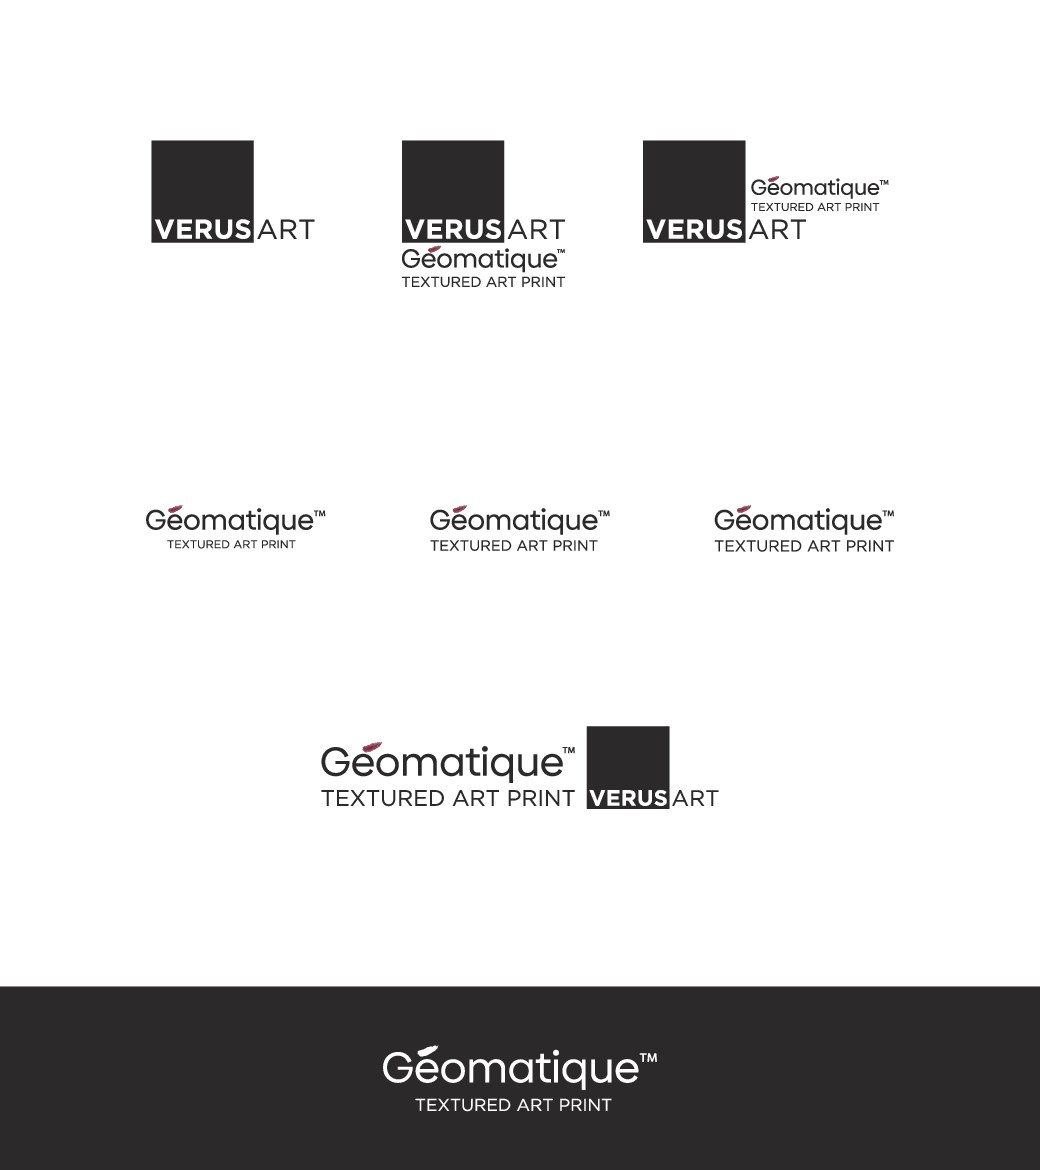 Wordmark for Innovative Textured Print Technology Set to Disrupt Art Decor Market